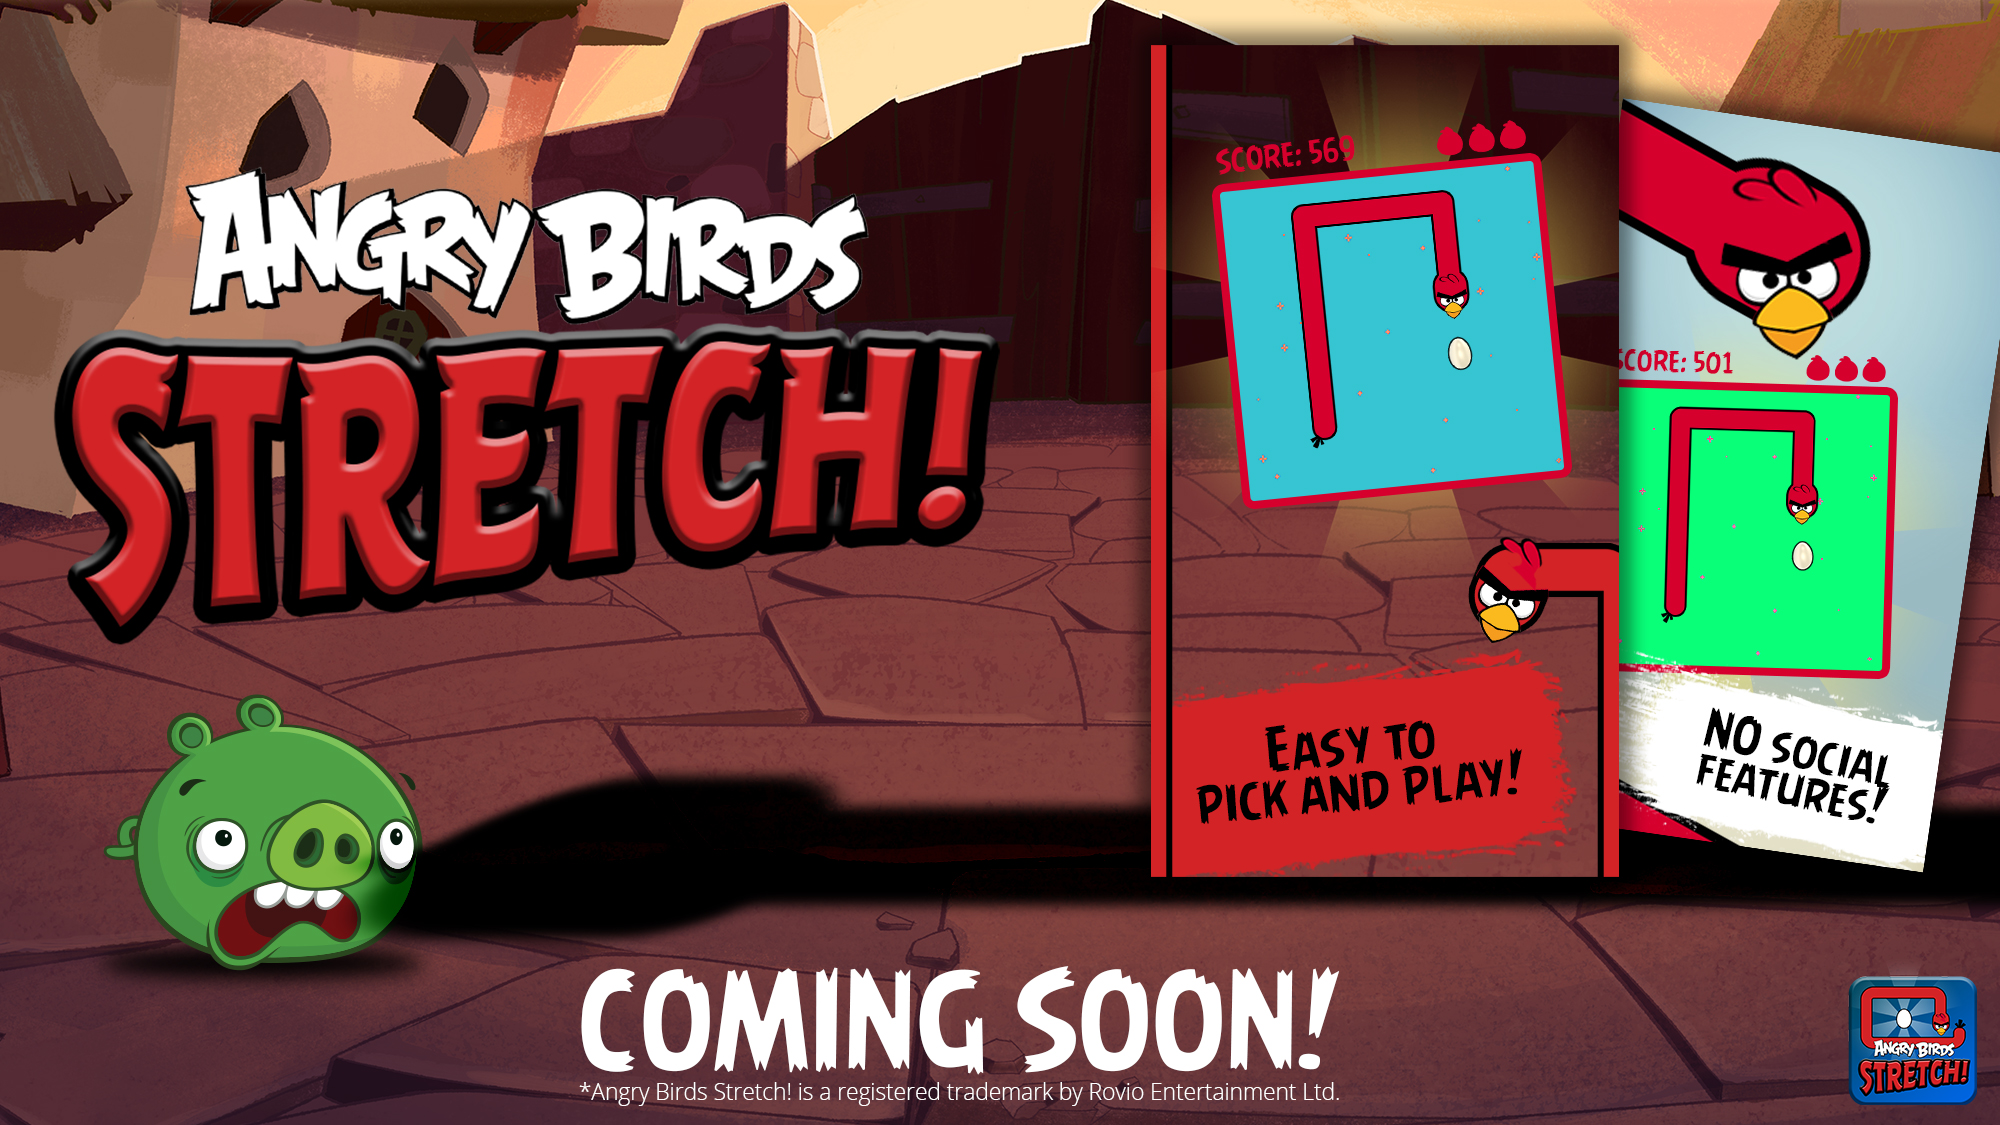 Angry Birds Stretch!